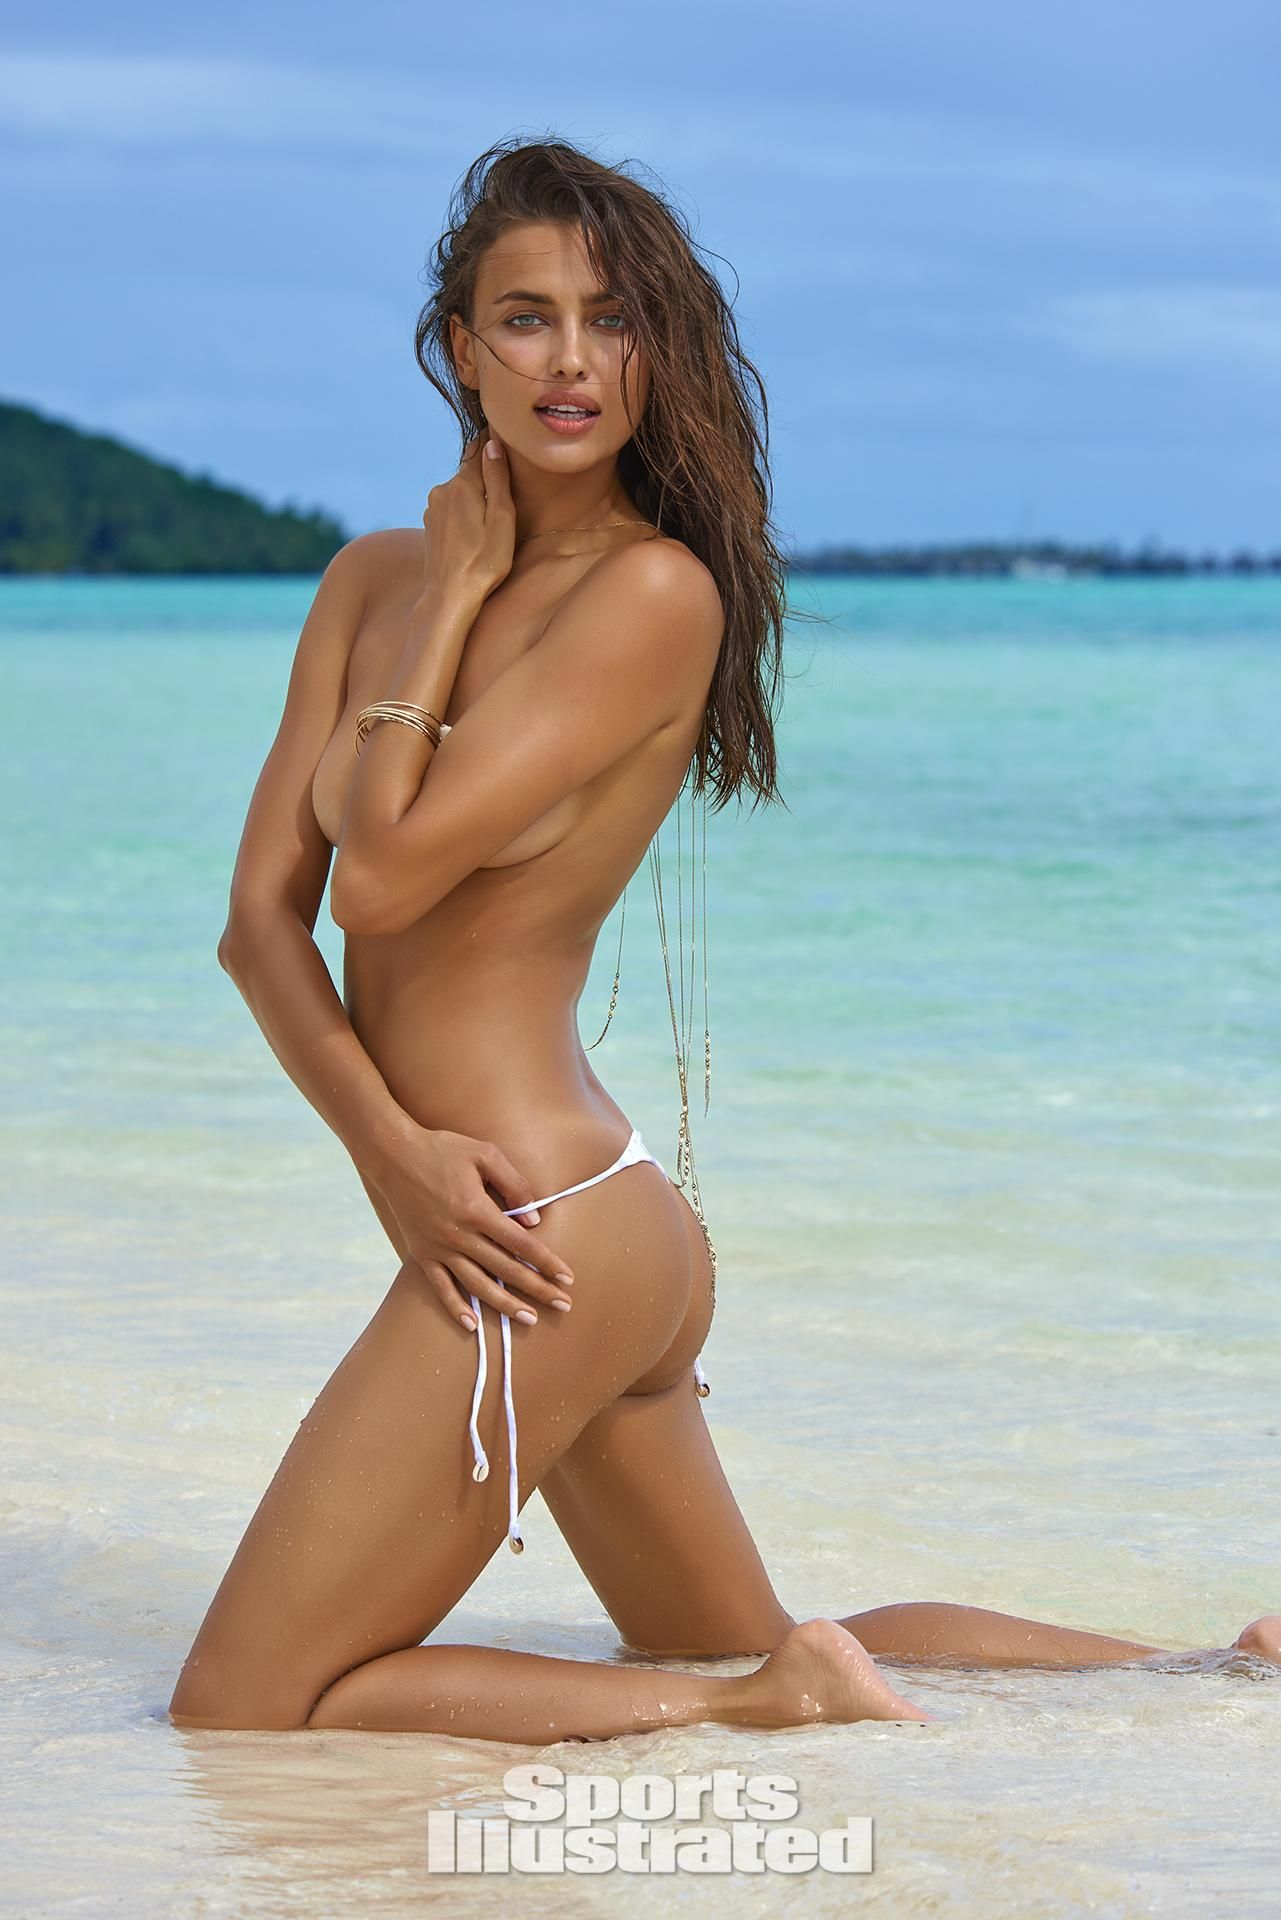 Irina Shayk Topless Photo...